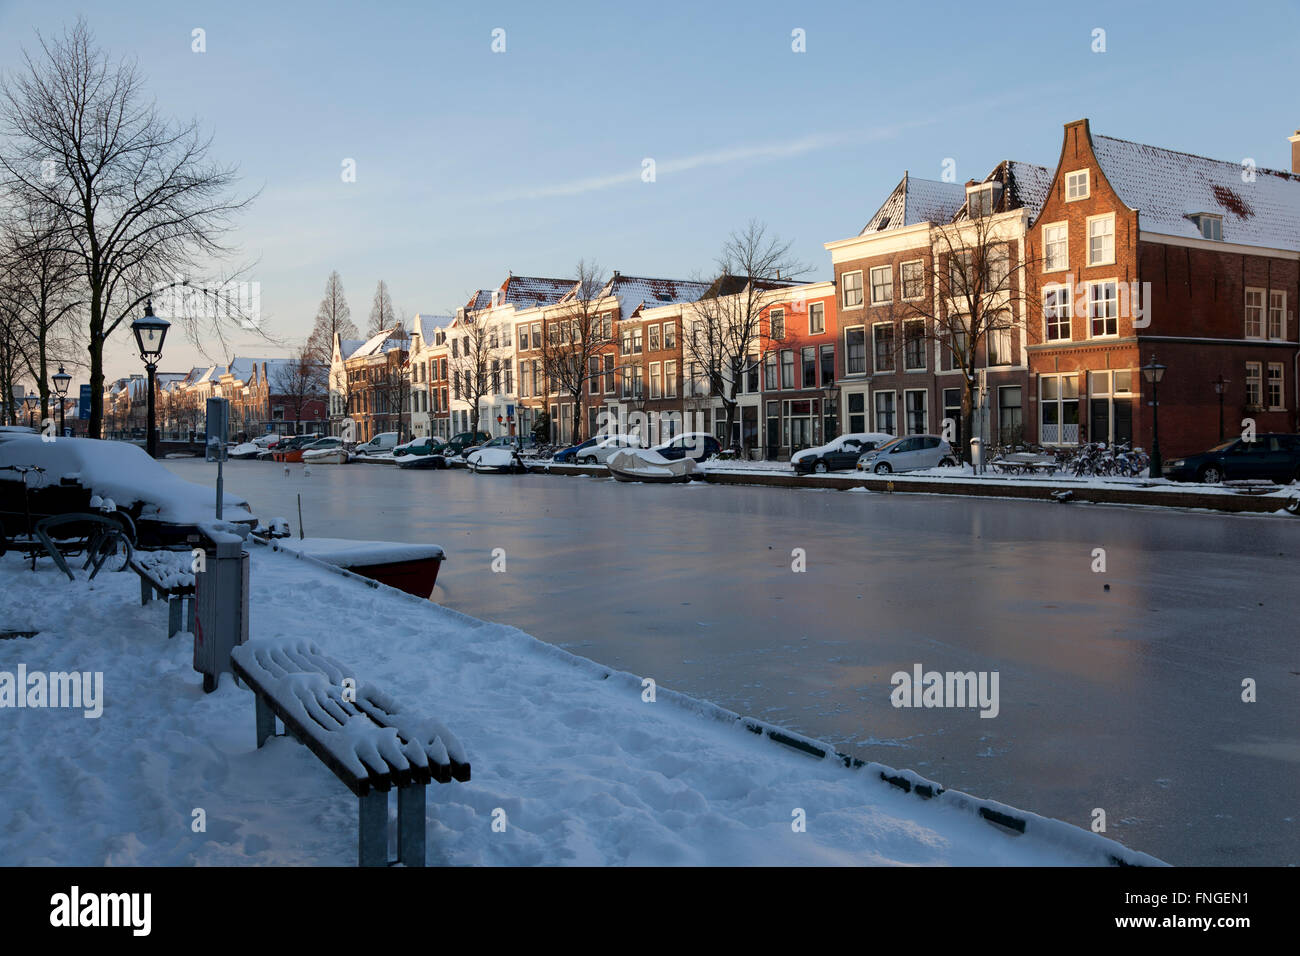 Frozen canal in winter in Leiden, Holland - Stock Image